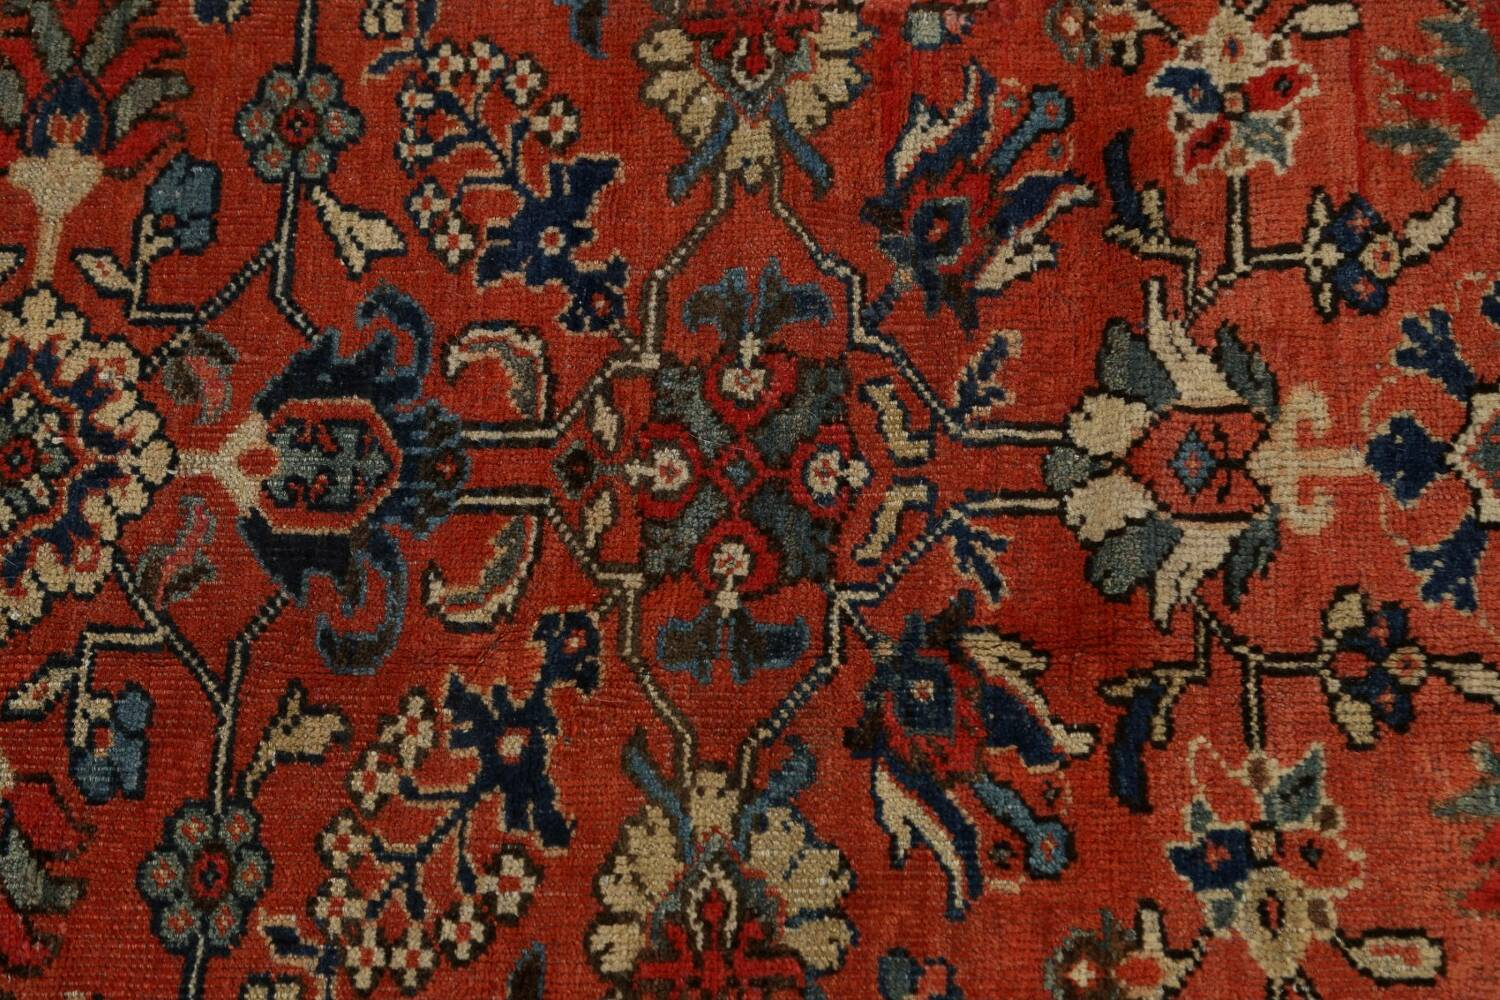 Pre-1900 Antique Vegetable Dye Sultanabad Persian Area Rug 10x14 image 11